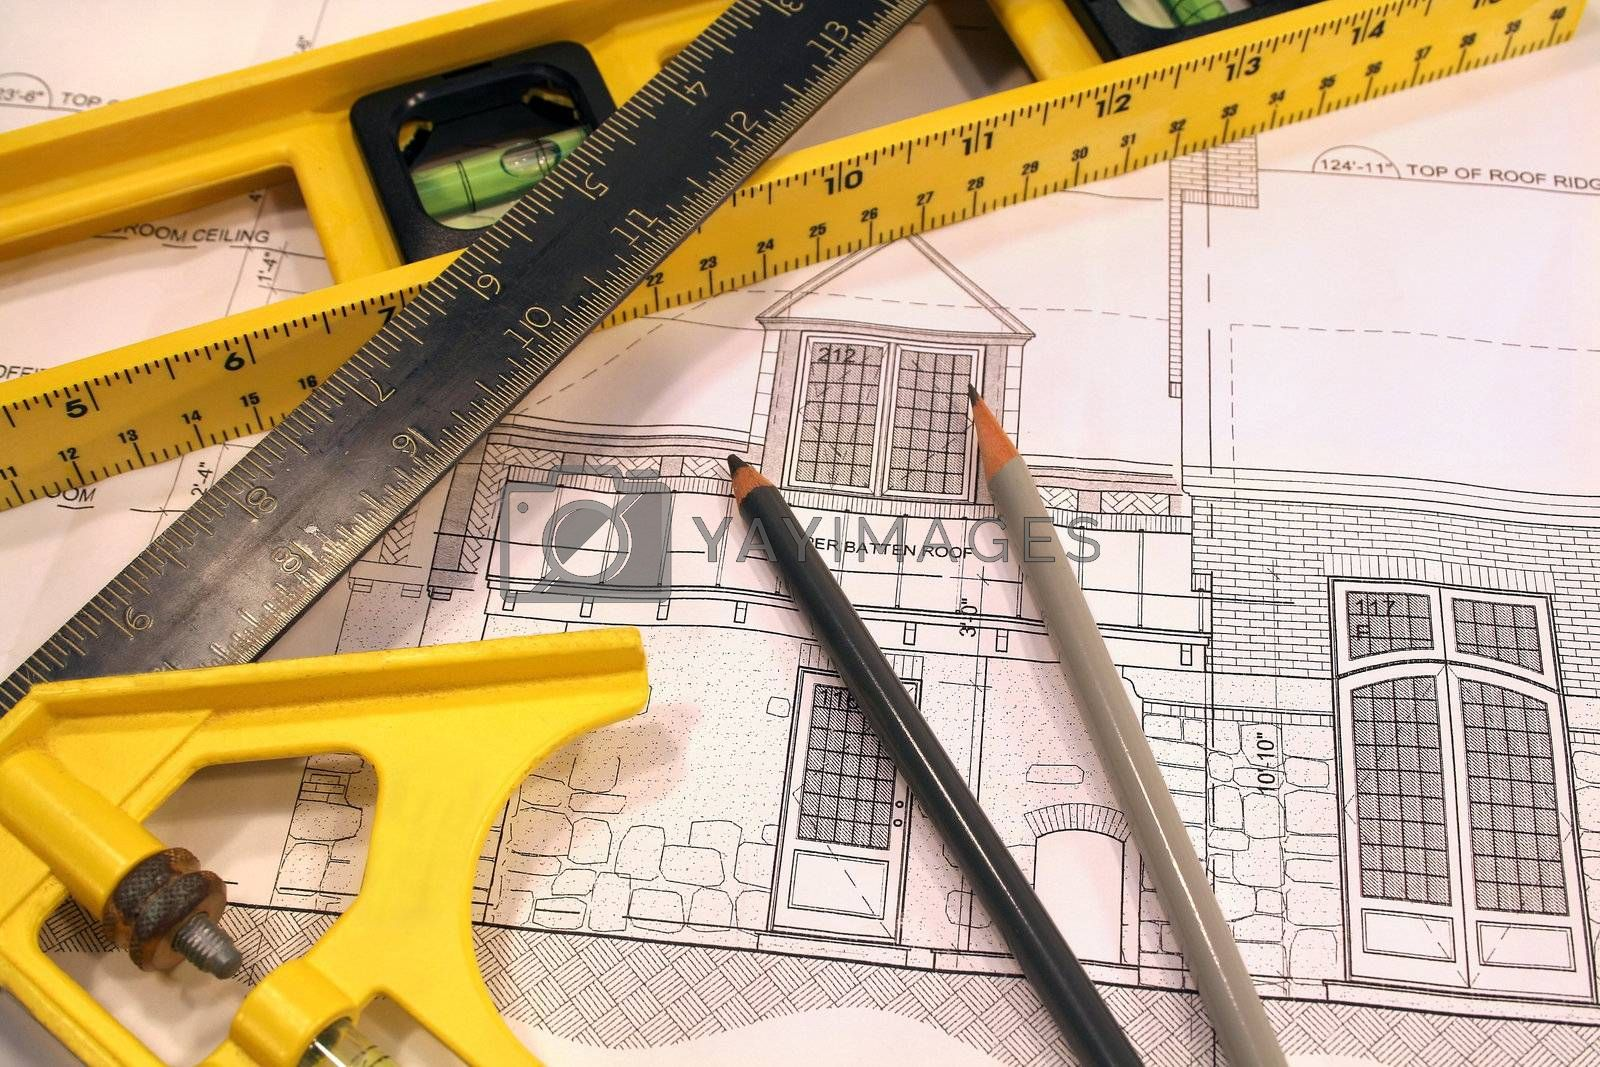 Architectural drawings and  tools of the trade